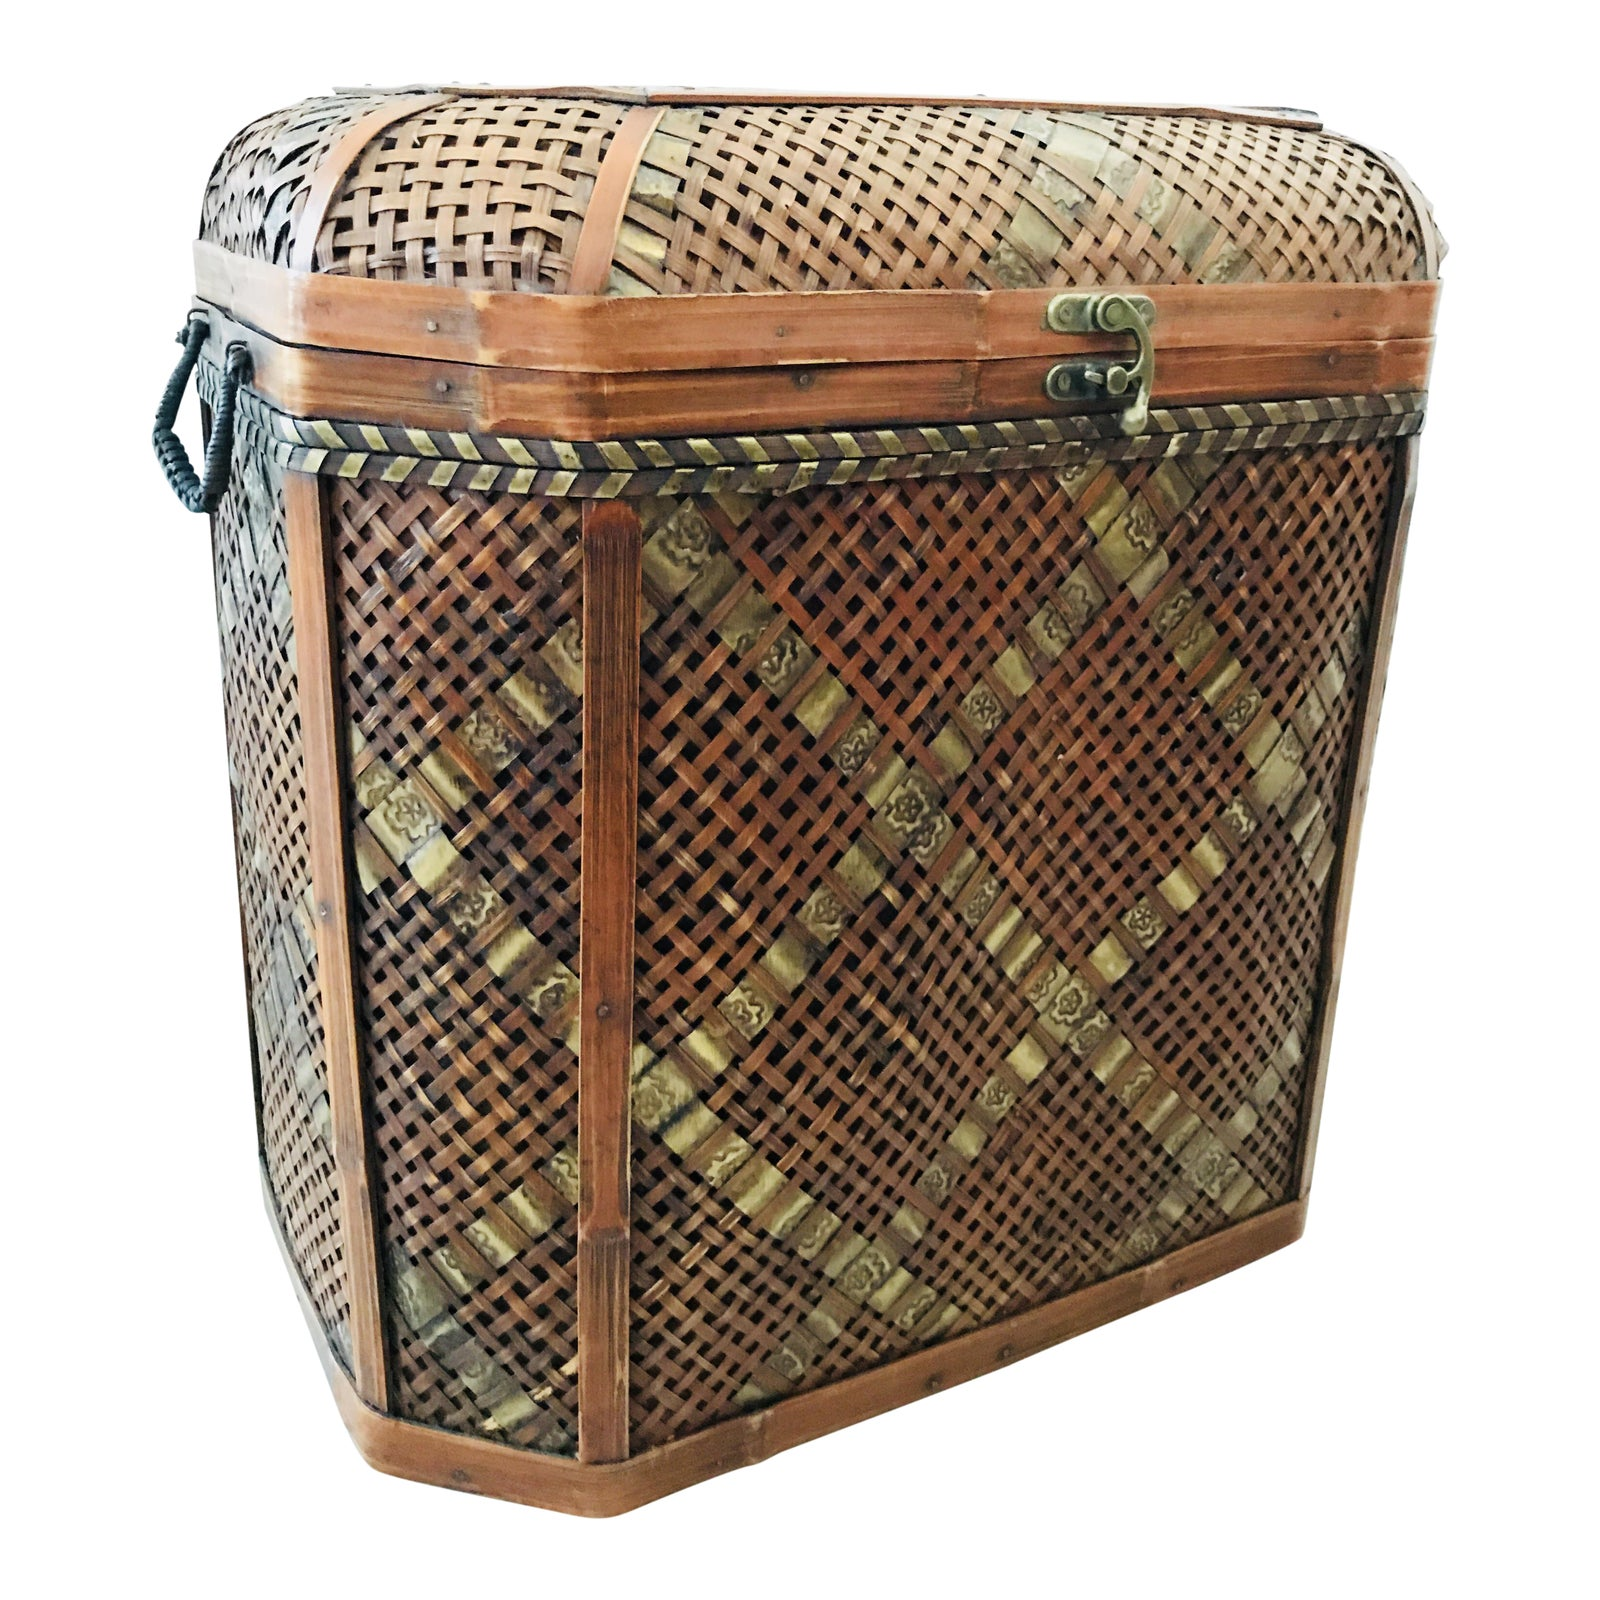 Vintage Chinese Bamboo Wedding Basket Trunk Blanket Chest With Hinges